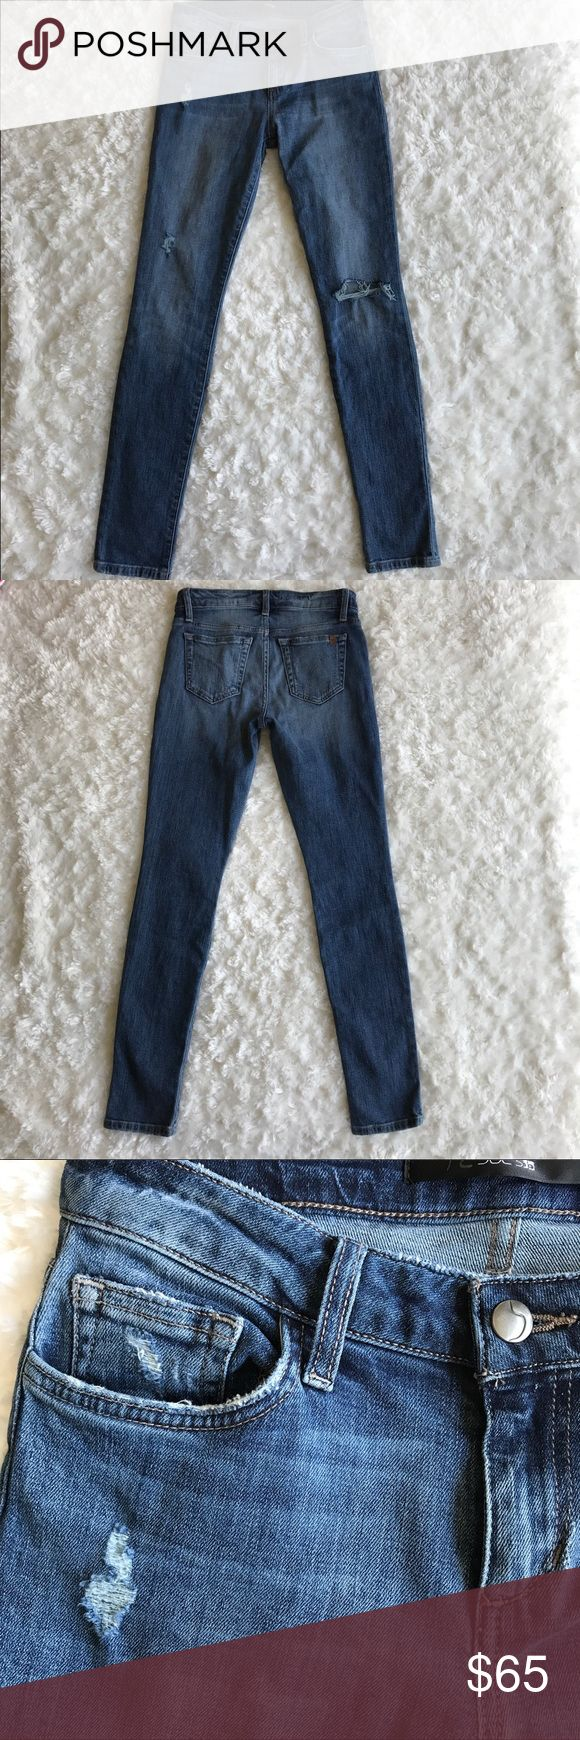 """NWOT Joe's Slim Boyfriend Jeans Becky Casual boyfriend jeans with slight distressing. Zip fly with button closure. Five pocket style. Rise is about 9"""" inseam is 29"""". 98% cotton and 2% spandex. Joe's Jeans Jeans Boyfriend"""